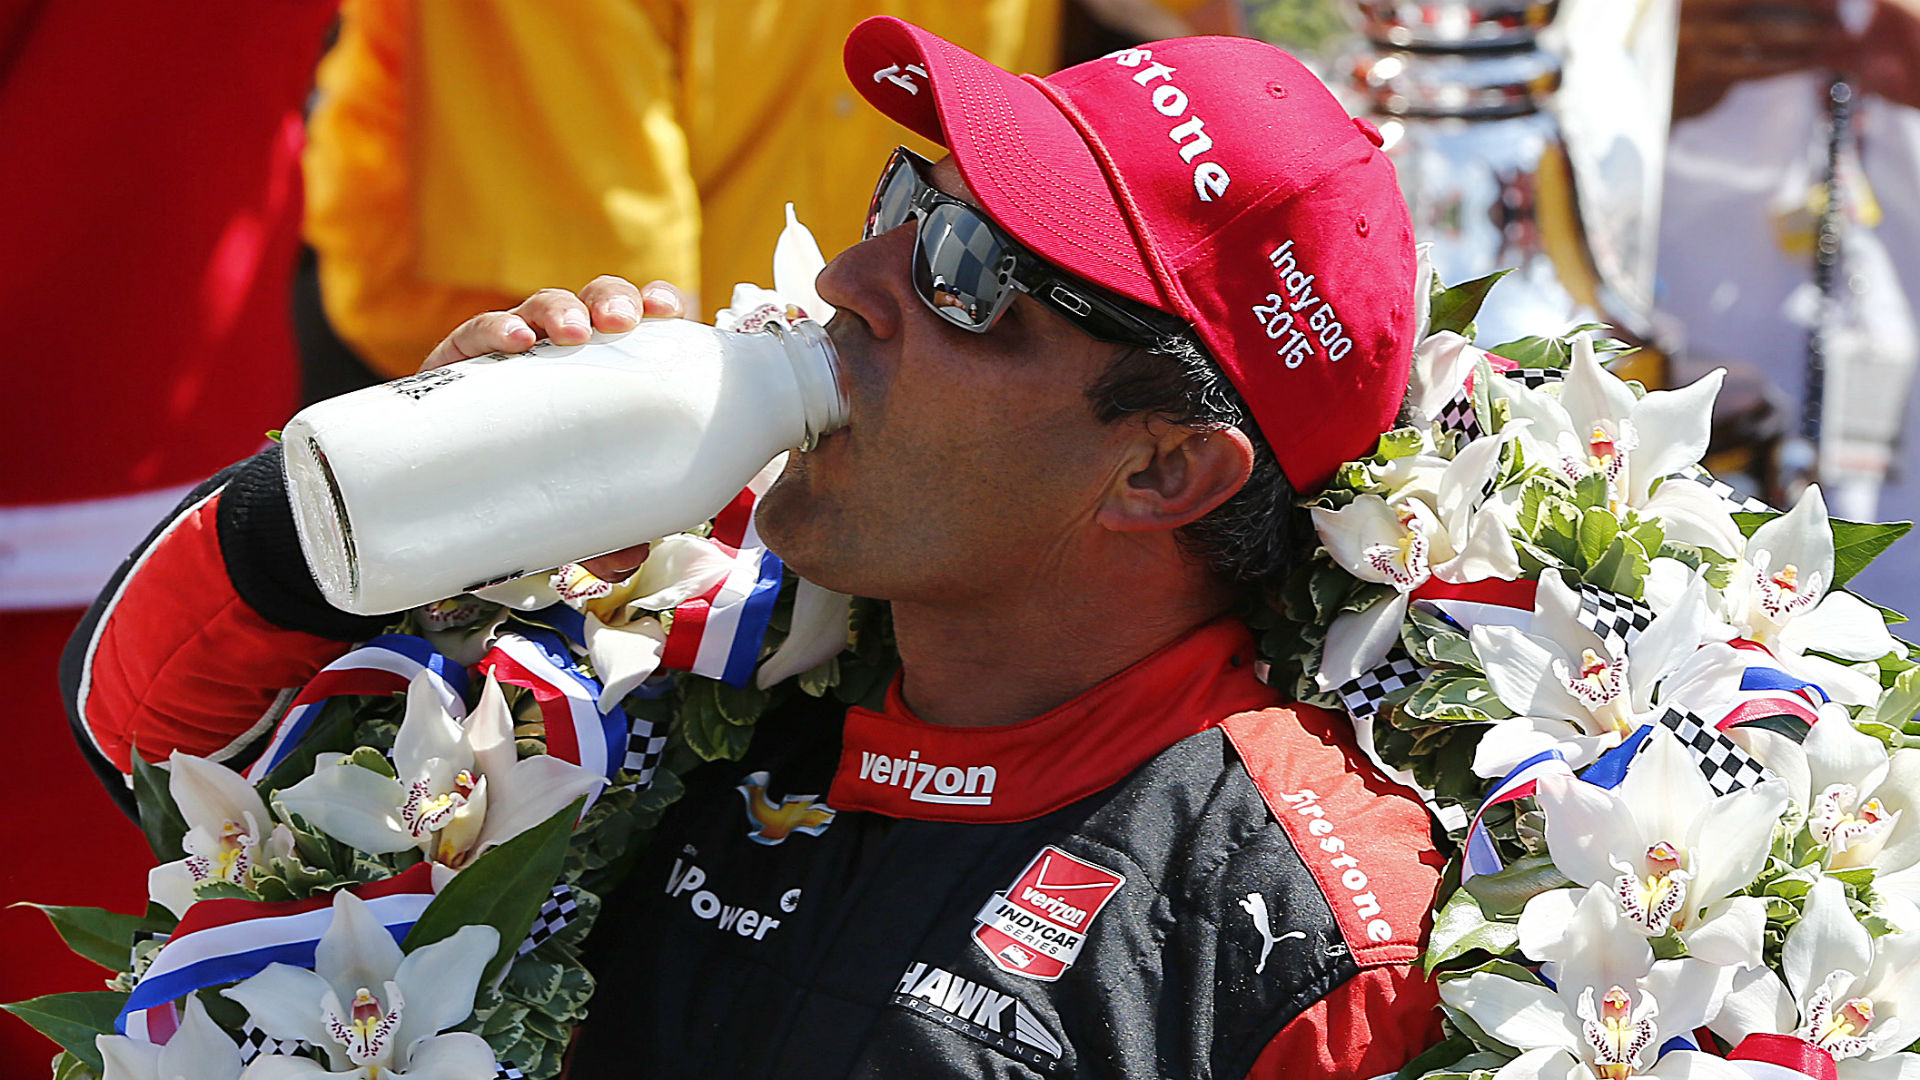 Juan Pablo Montoya cashes in big with second Indy 500 victory